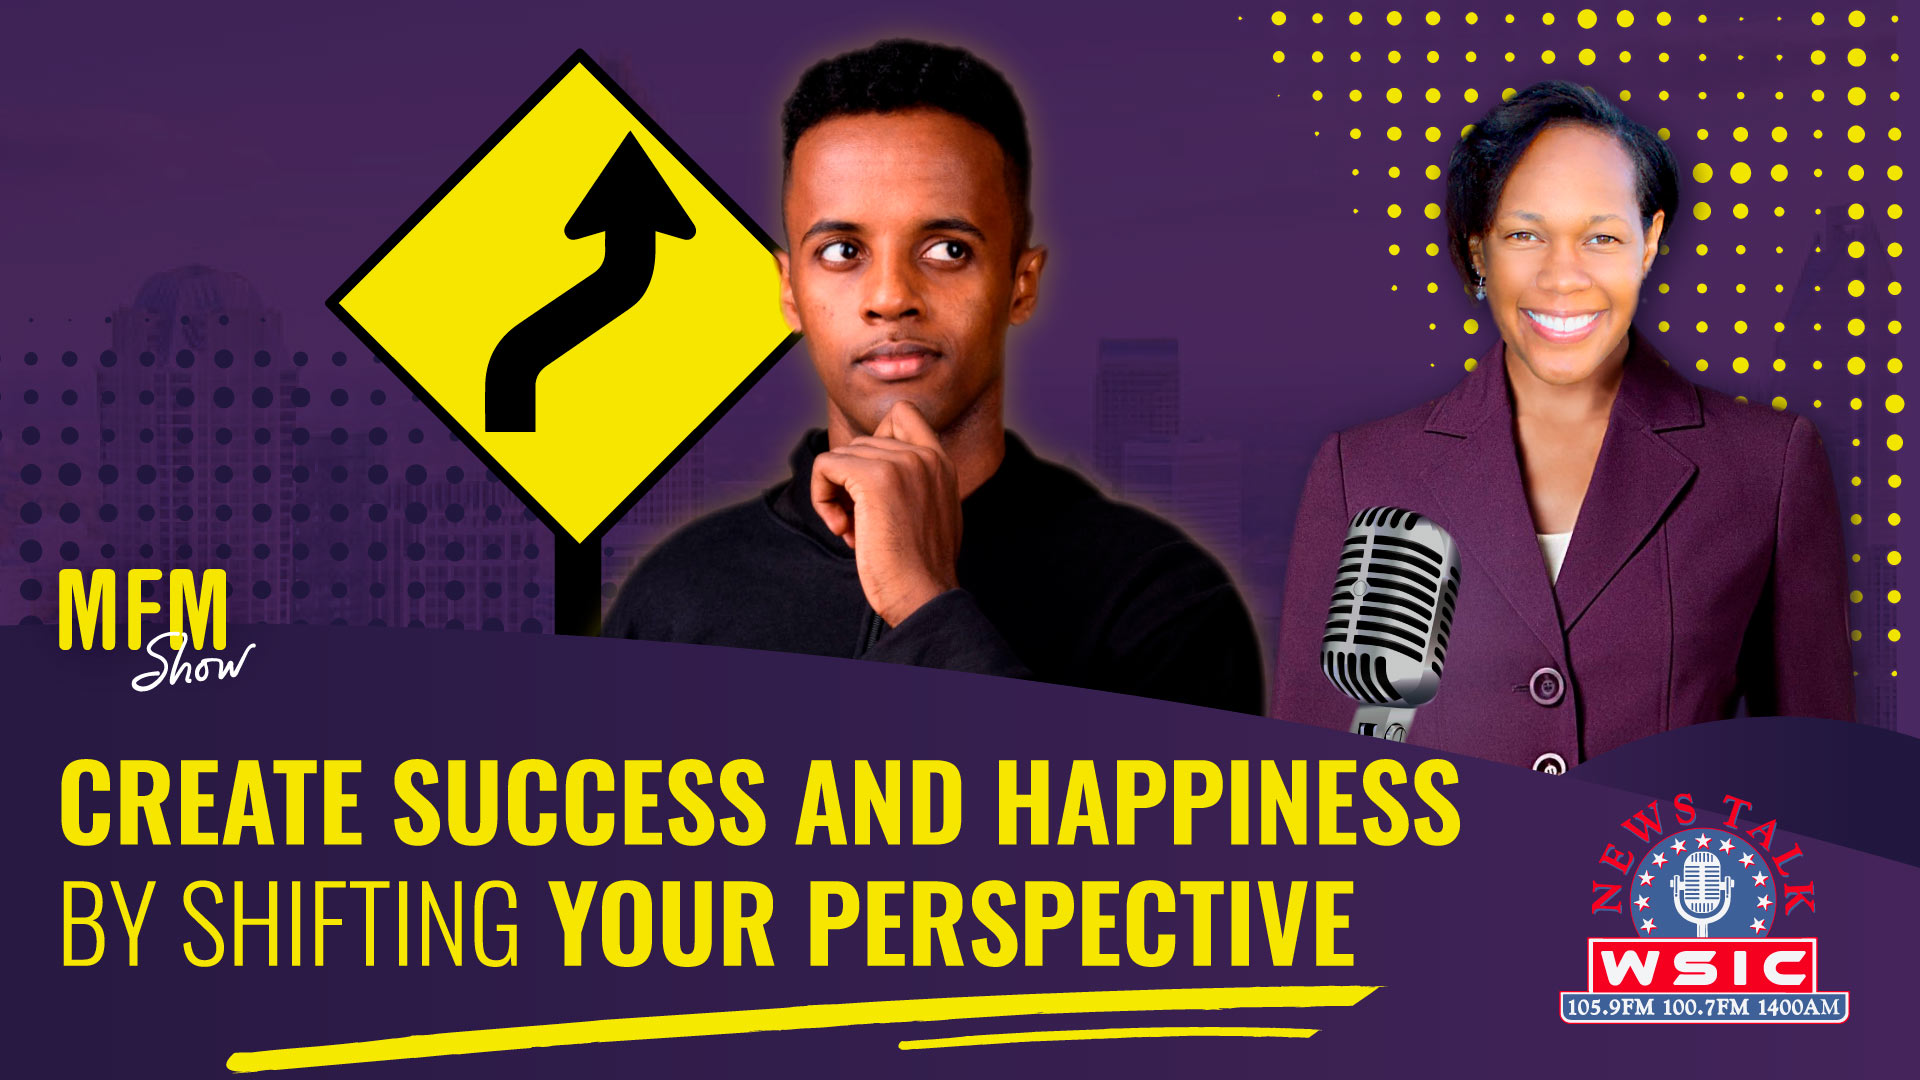 Create Success and Happiness by Shifting Your Perspective